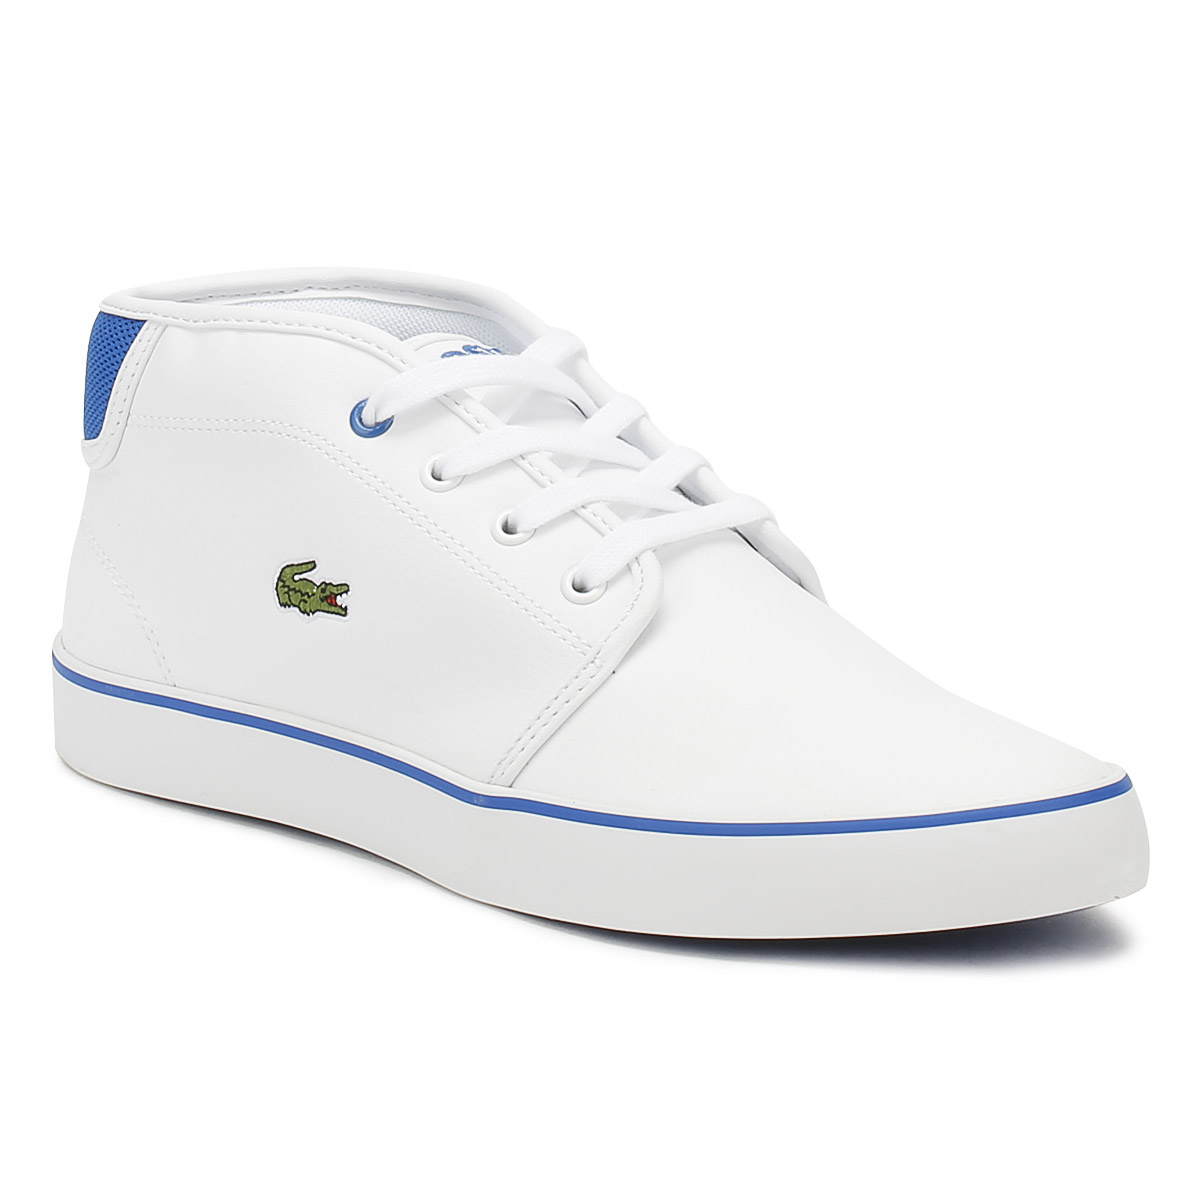 8542fd042 Details about Lacoste Junior Trainers White  Blue AMPTHILL 118 1 Kids  Leather Casual Shoes